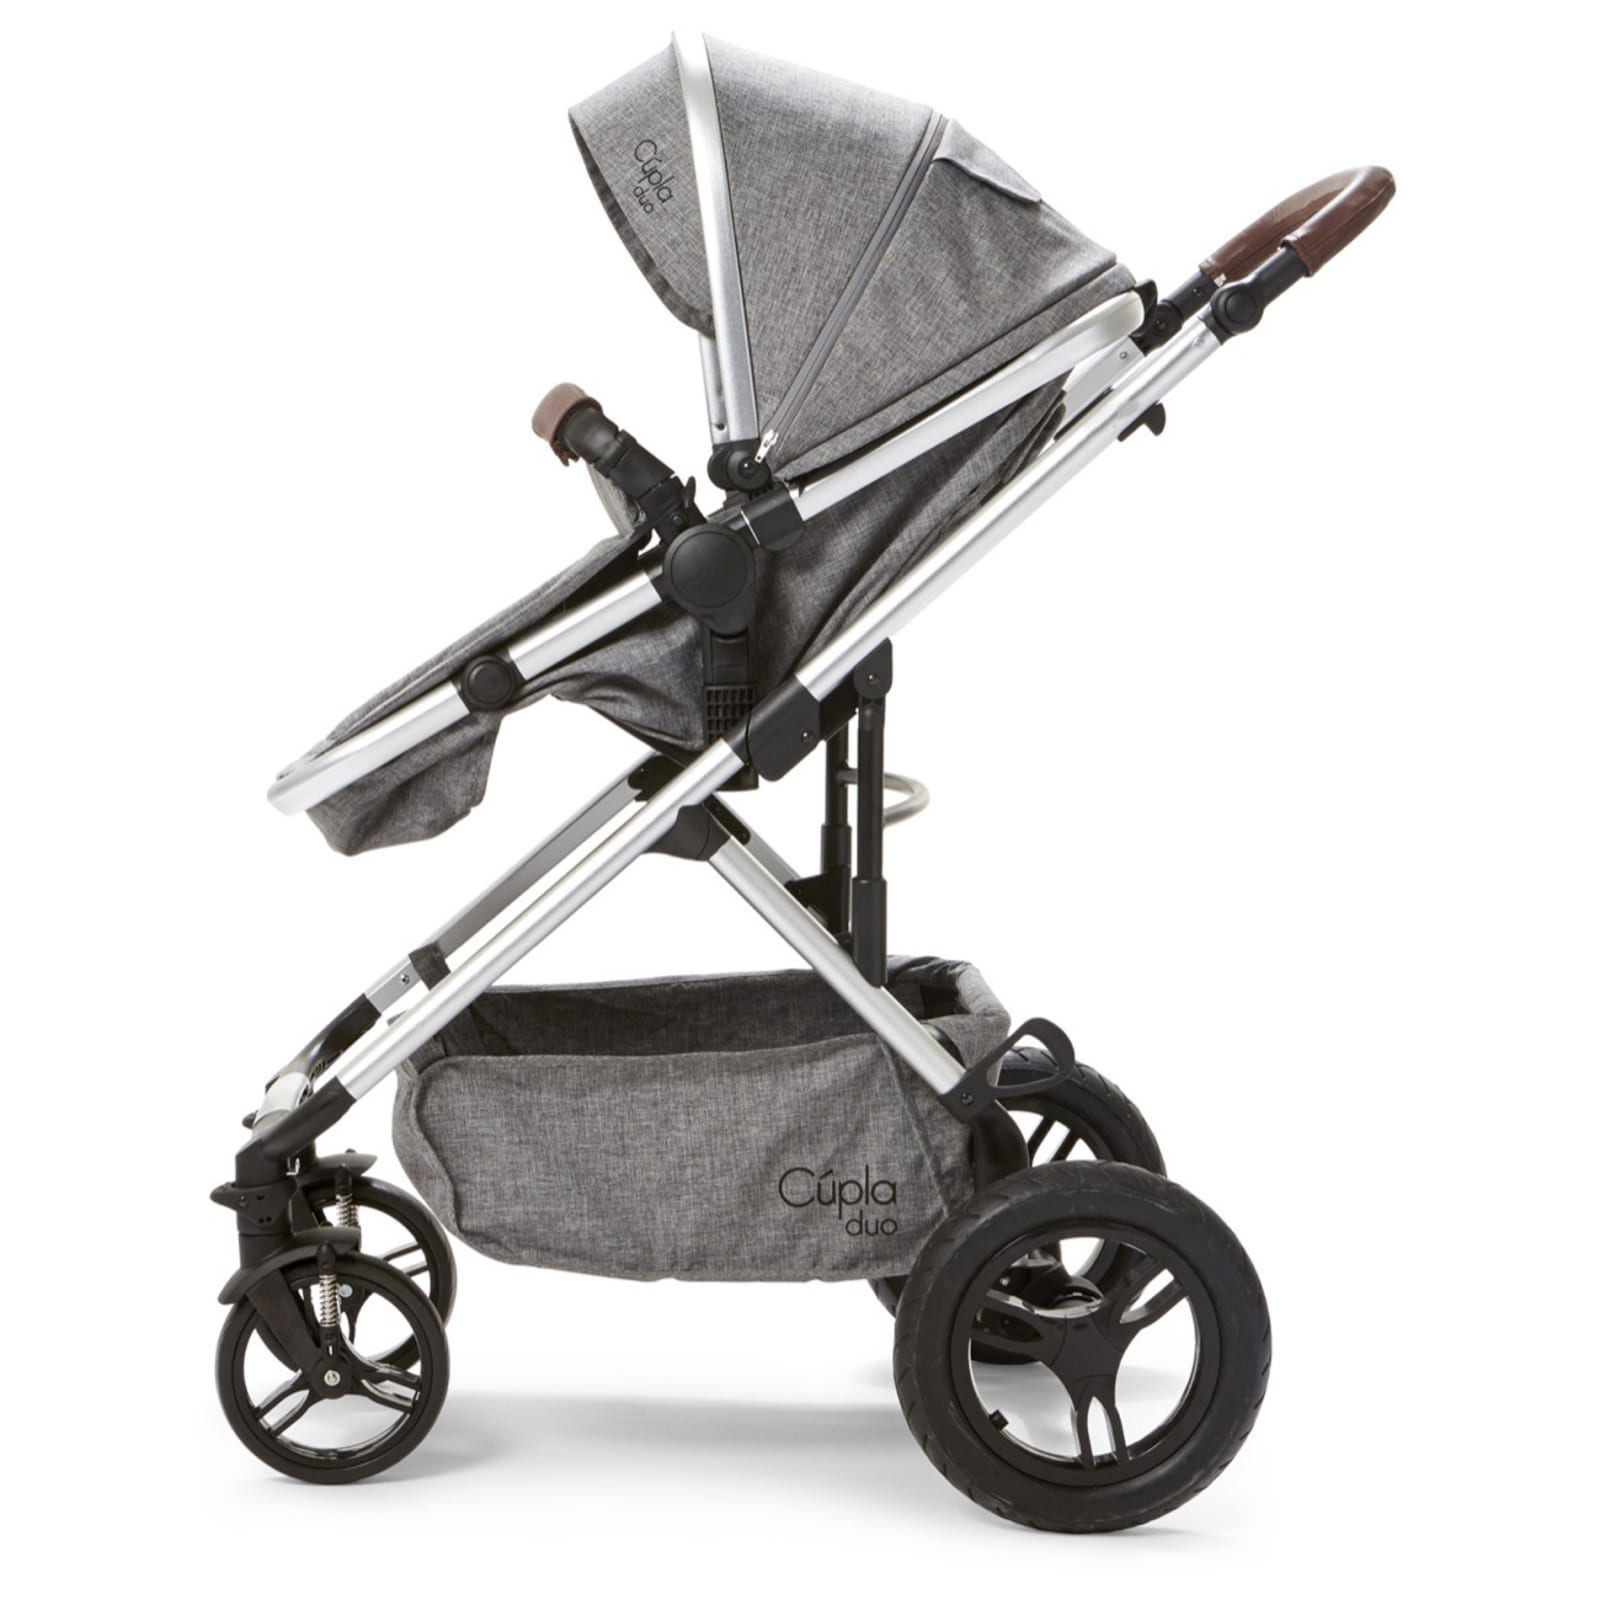 Cupla Duo 2 in 1 Pushchair –  Grey product image